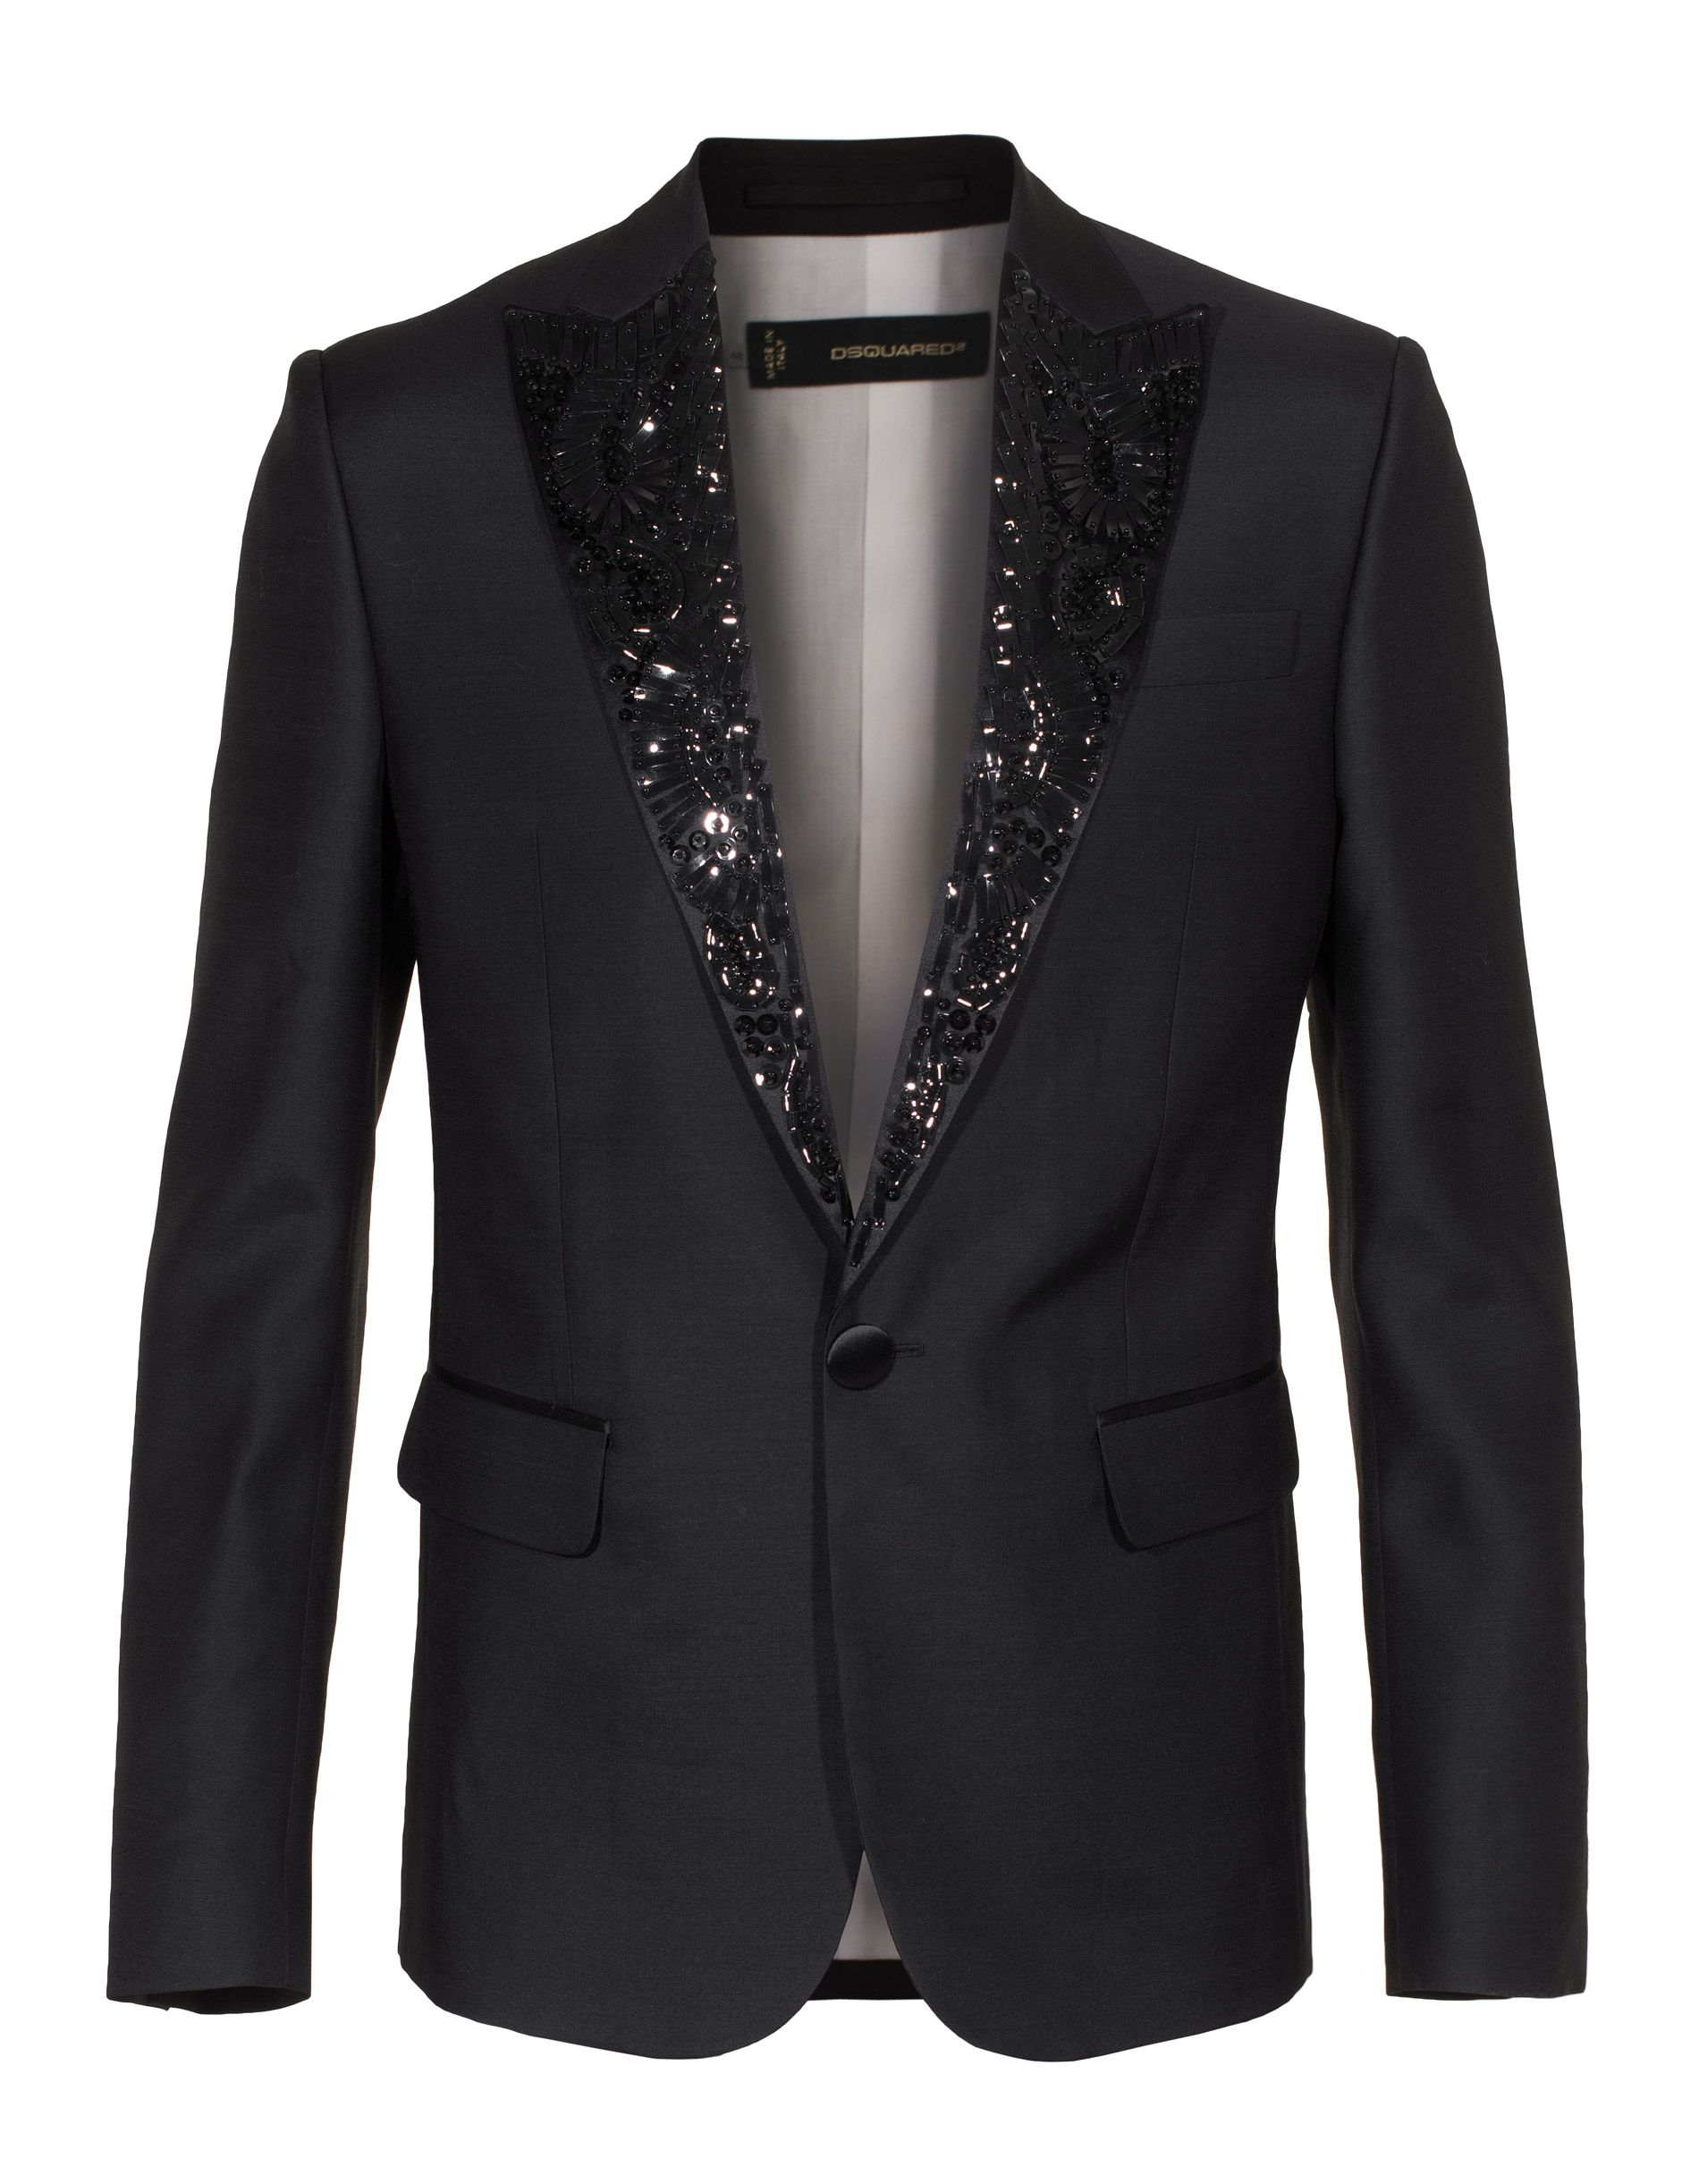 8bd30e7718 DSQUARED Smoking Black Smoking jacket with details | Férfi zakók ...